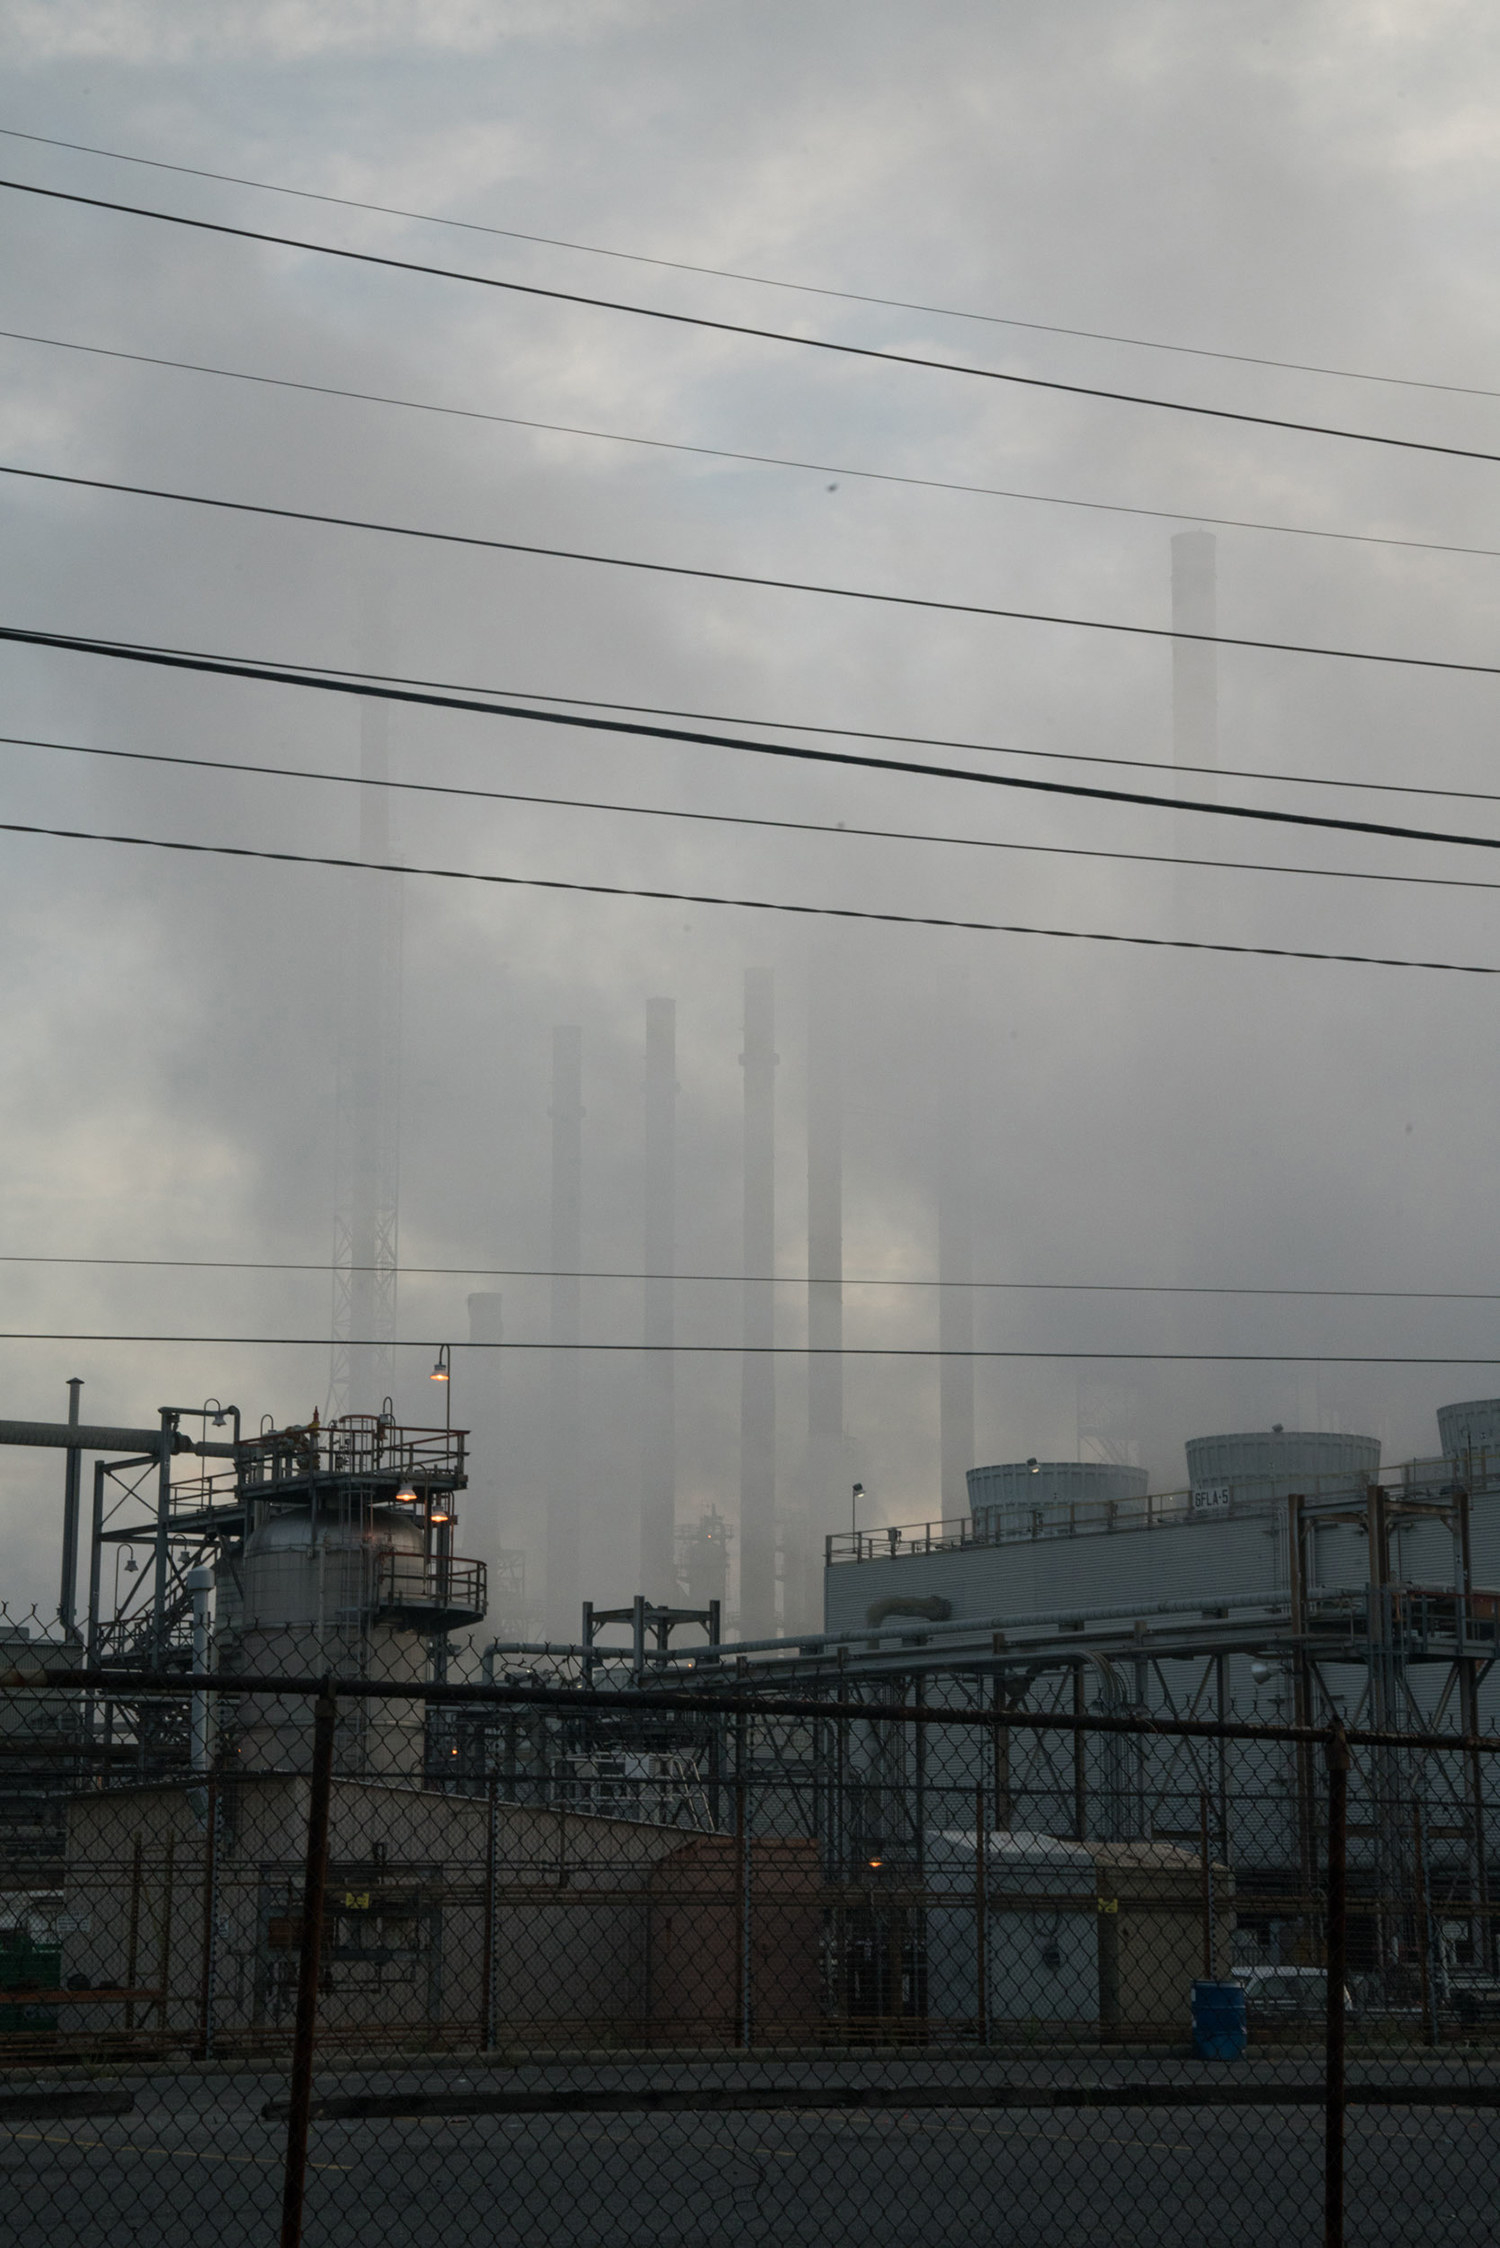 Factory smokestacks are barely visible in a cloud of smog from behind telephone wires and a metal fence